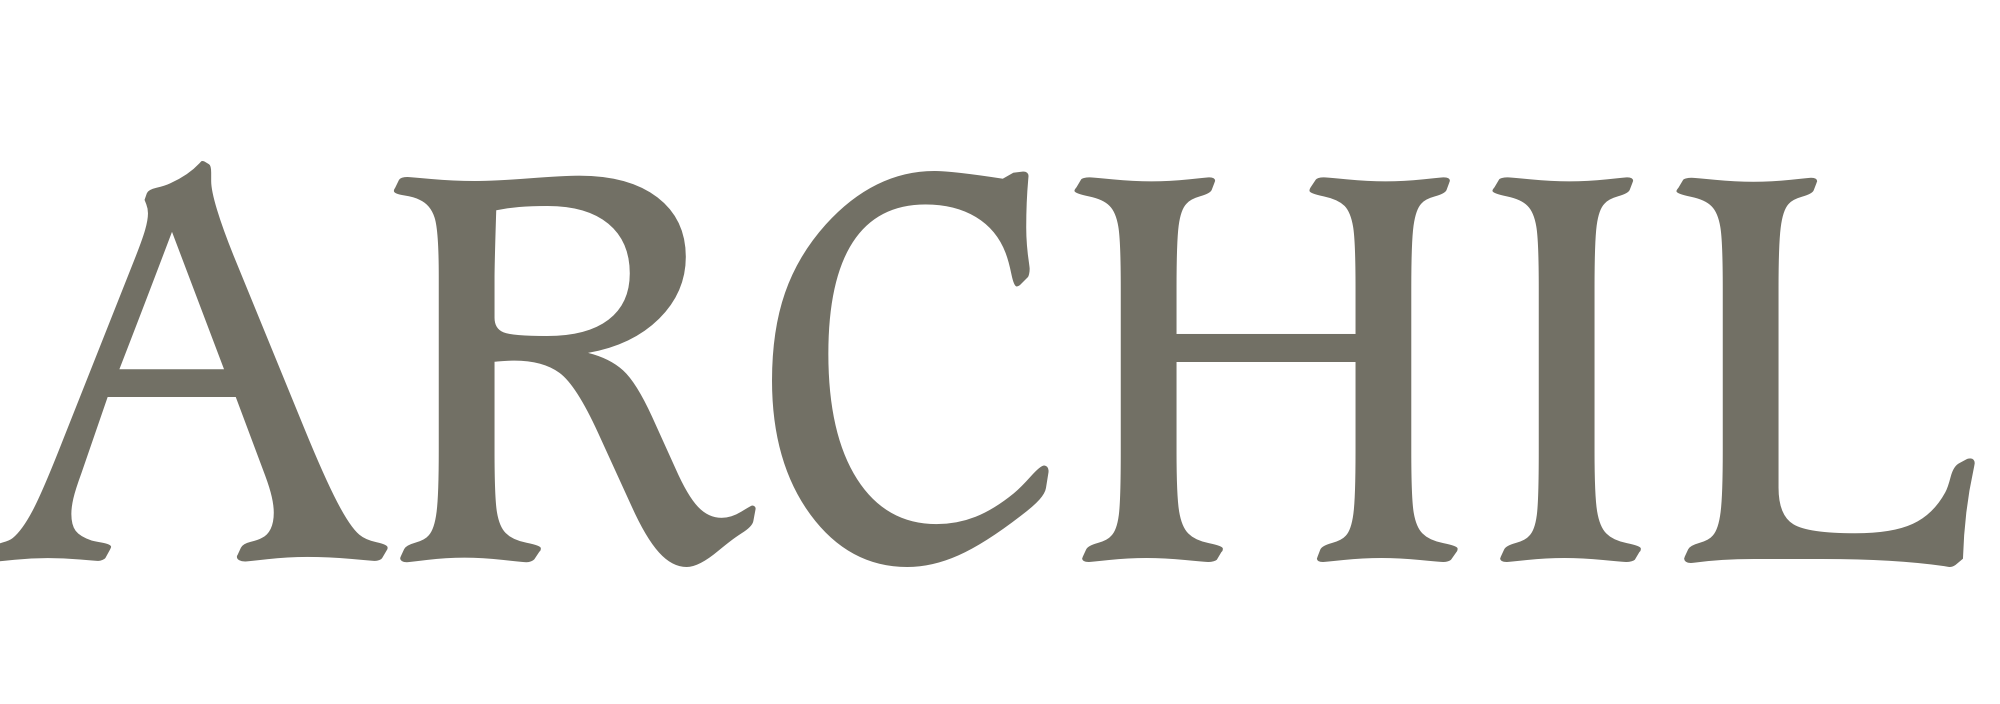 Arch'il - Name's Meaning of Arch'il (ARCHIL)